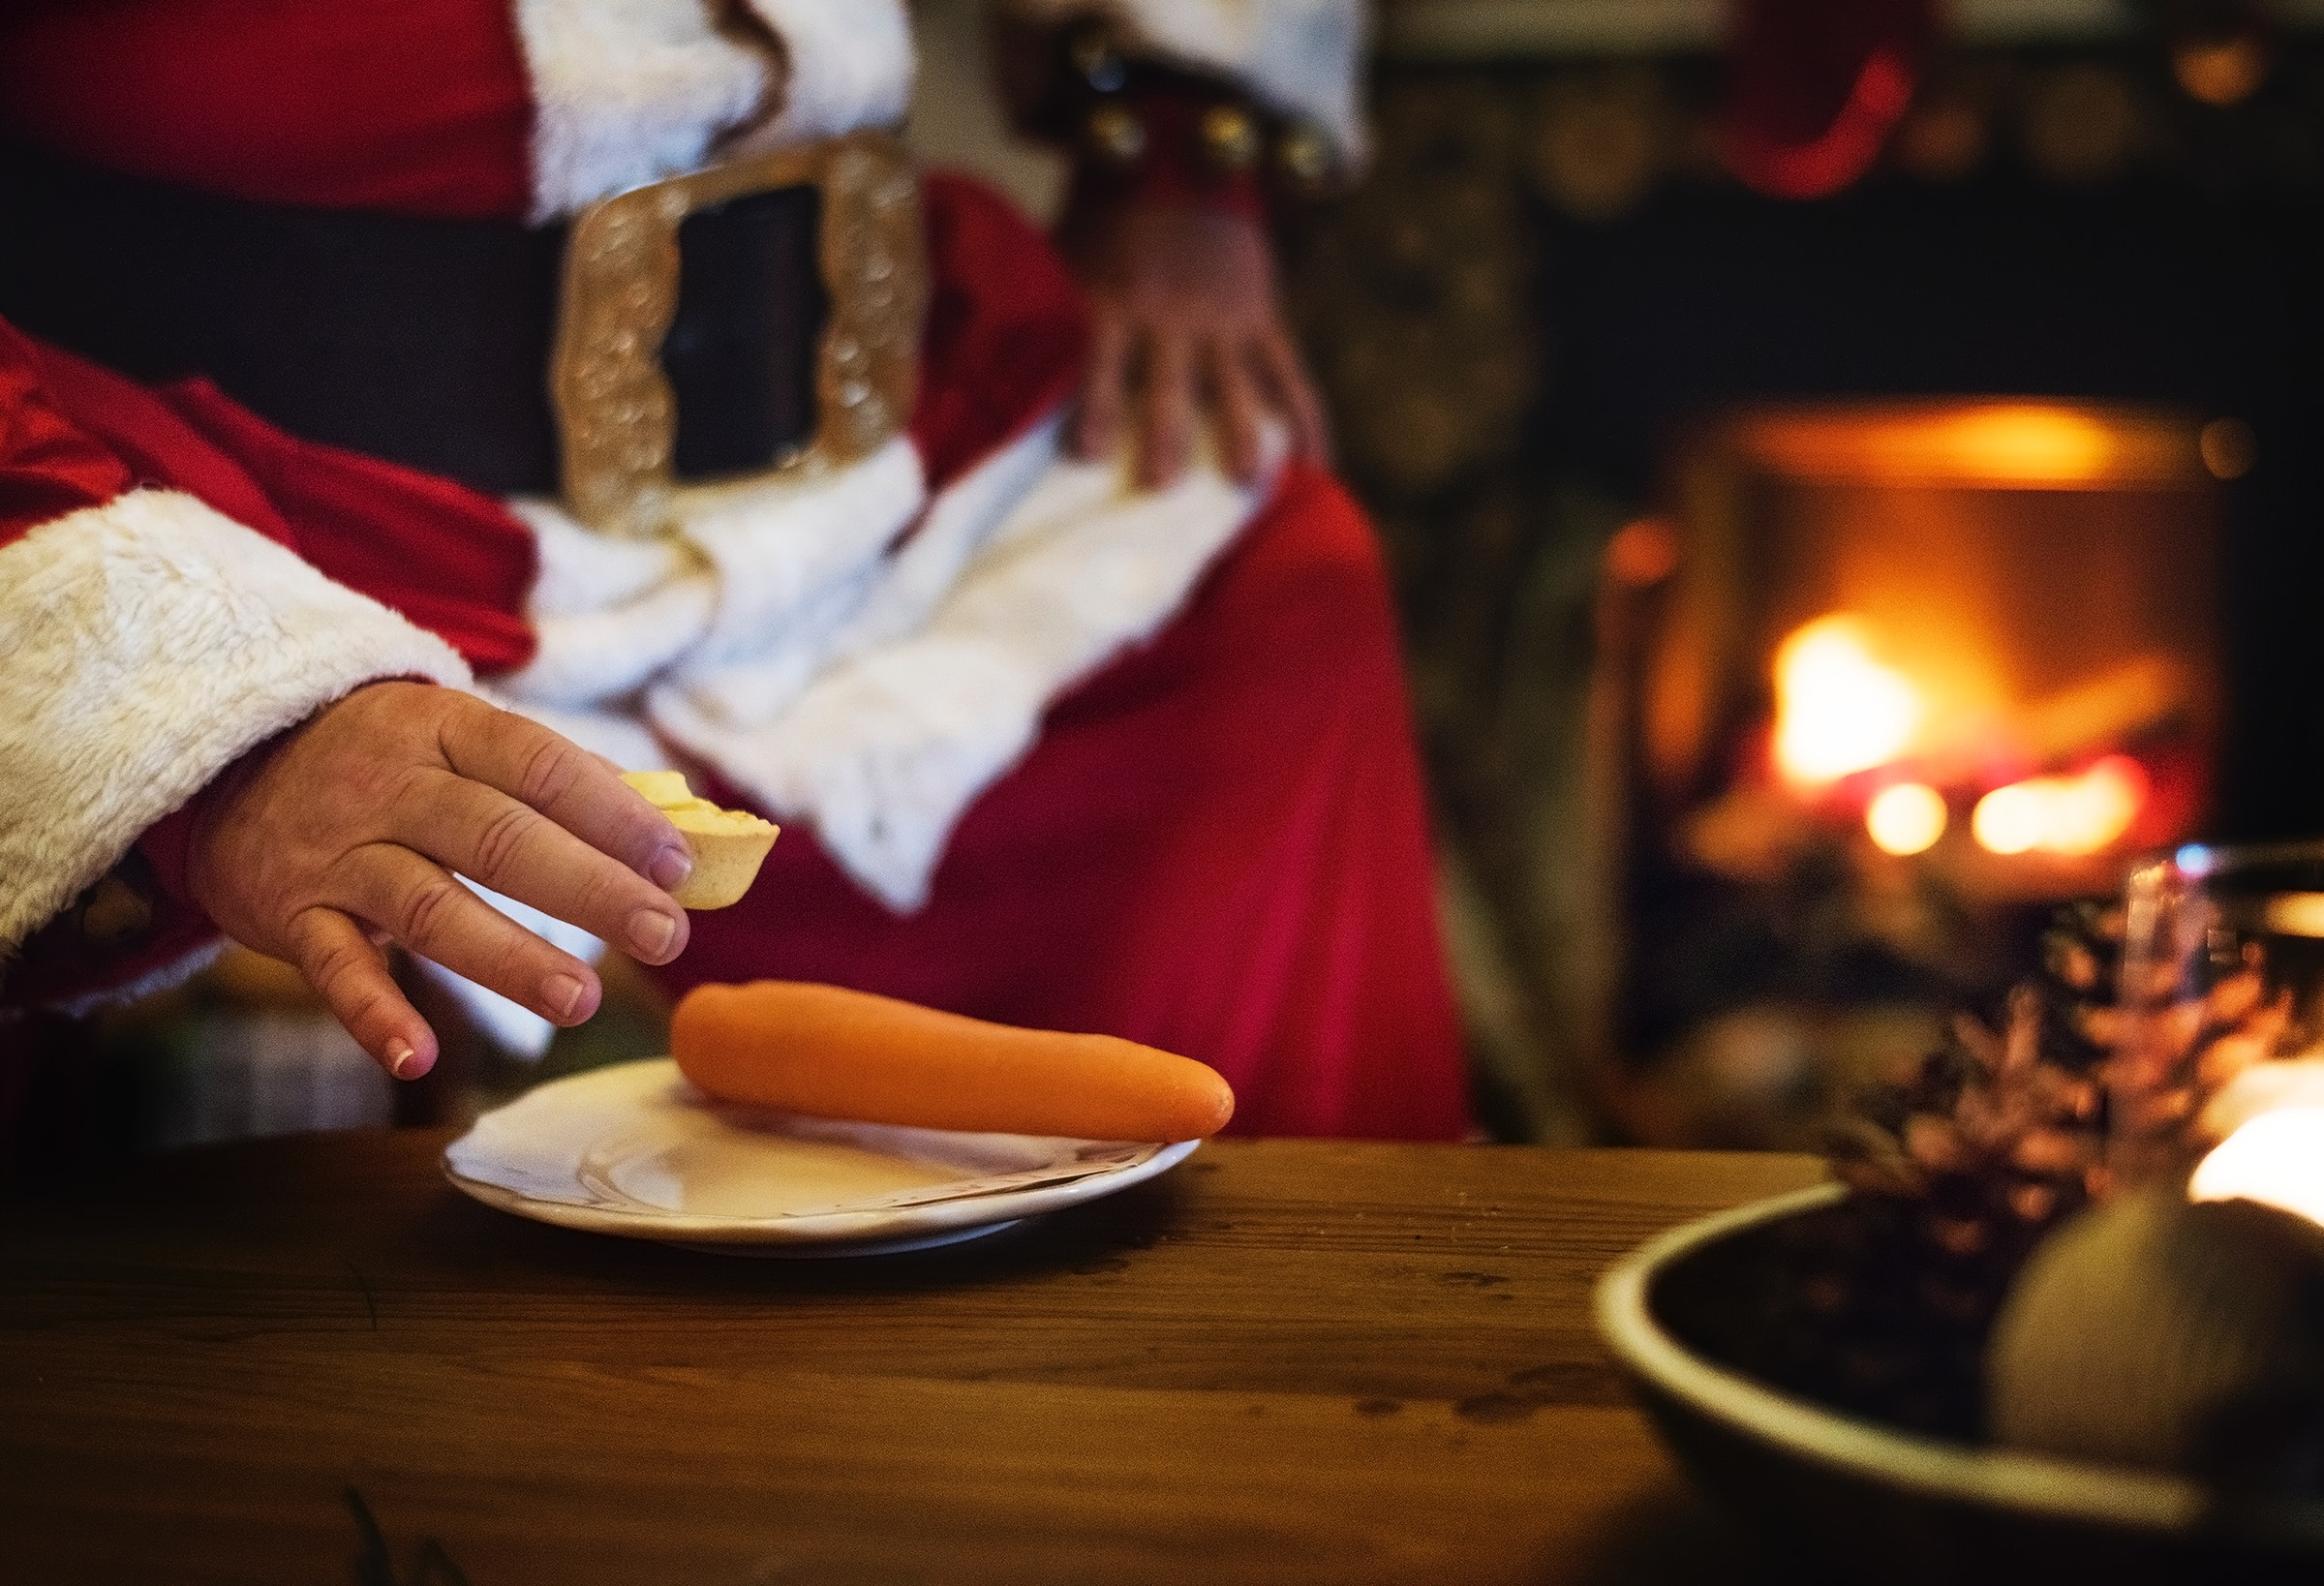 Person Holding Cheese Putting on White Plate, Adult, Merry christmas, Wood, Table, HQ Photo